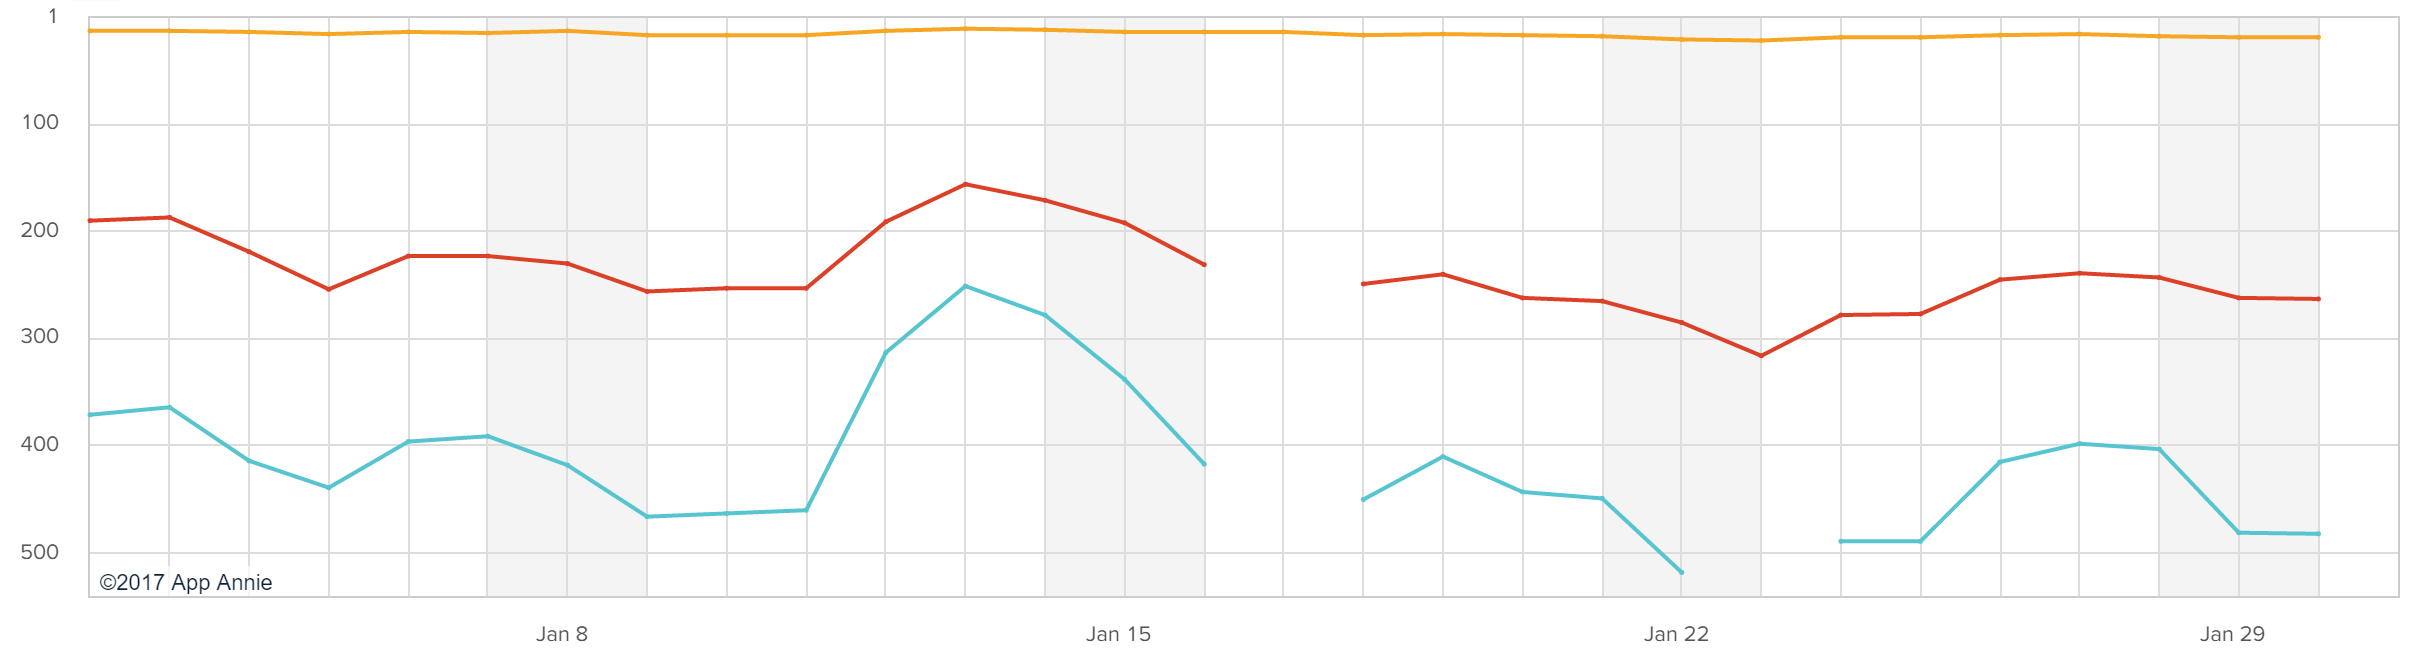 us google allo rankings on the play store graph